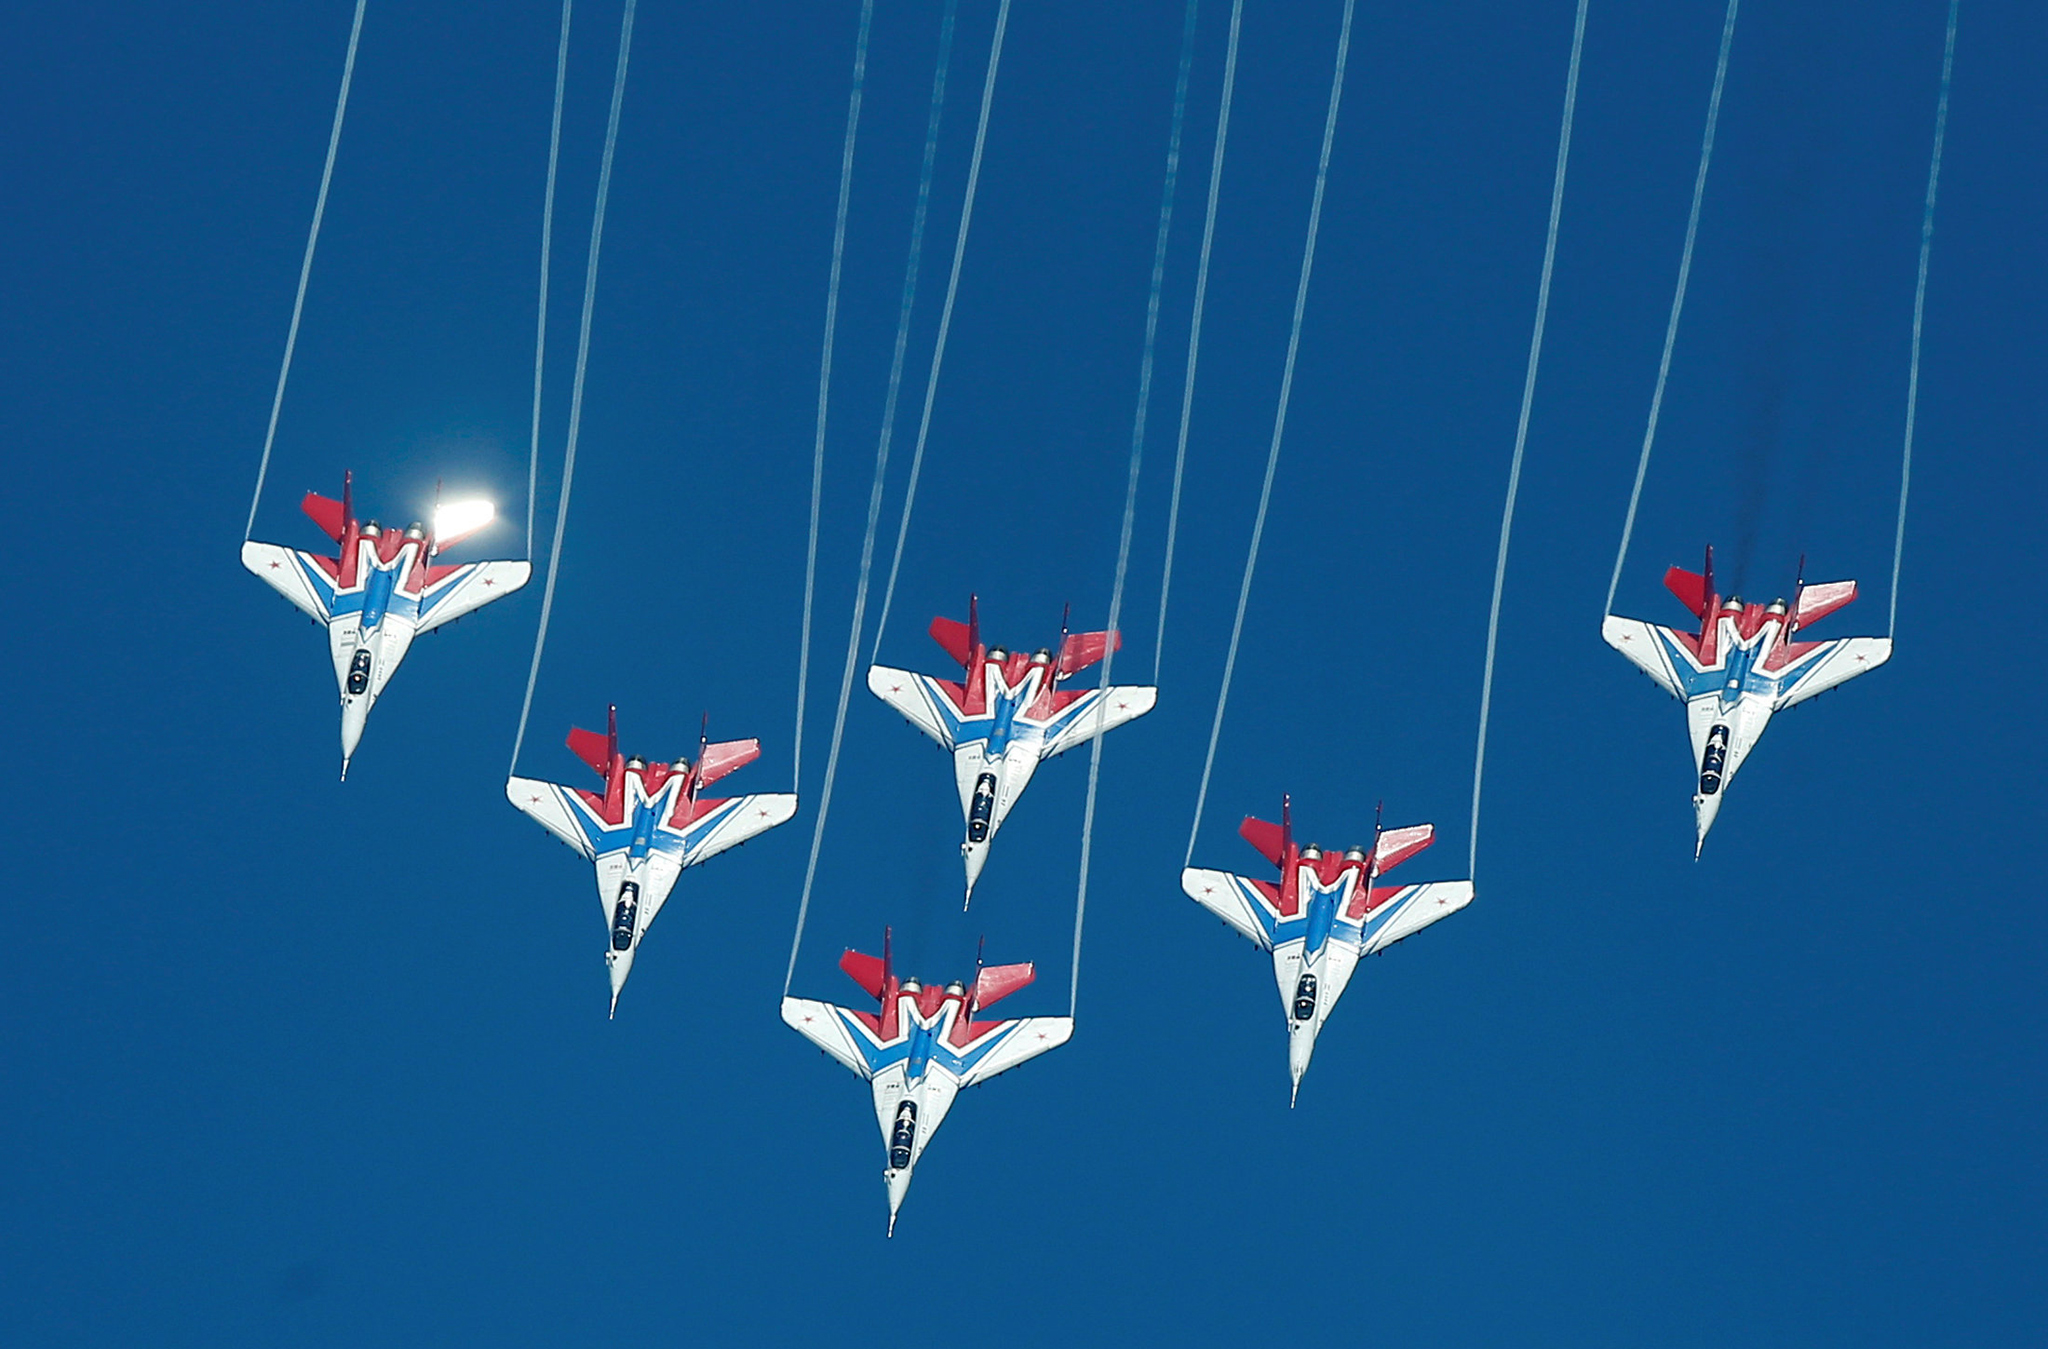 Mikoyan MiG-29 jet fighters of Strizhi aerobatic team fly in formation during International Army Games 2016 in Dubrovichi outside Ryazan